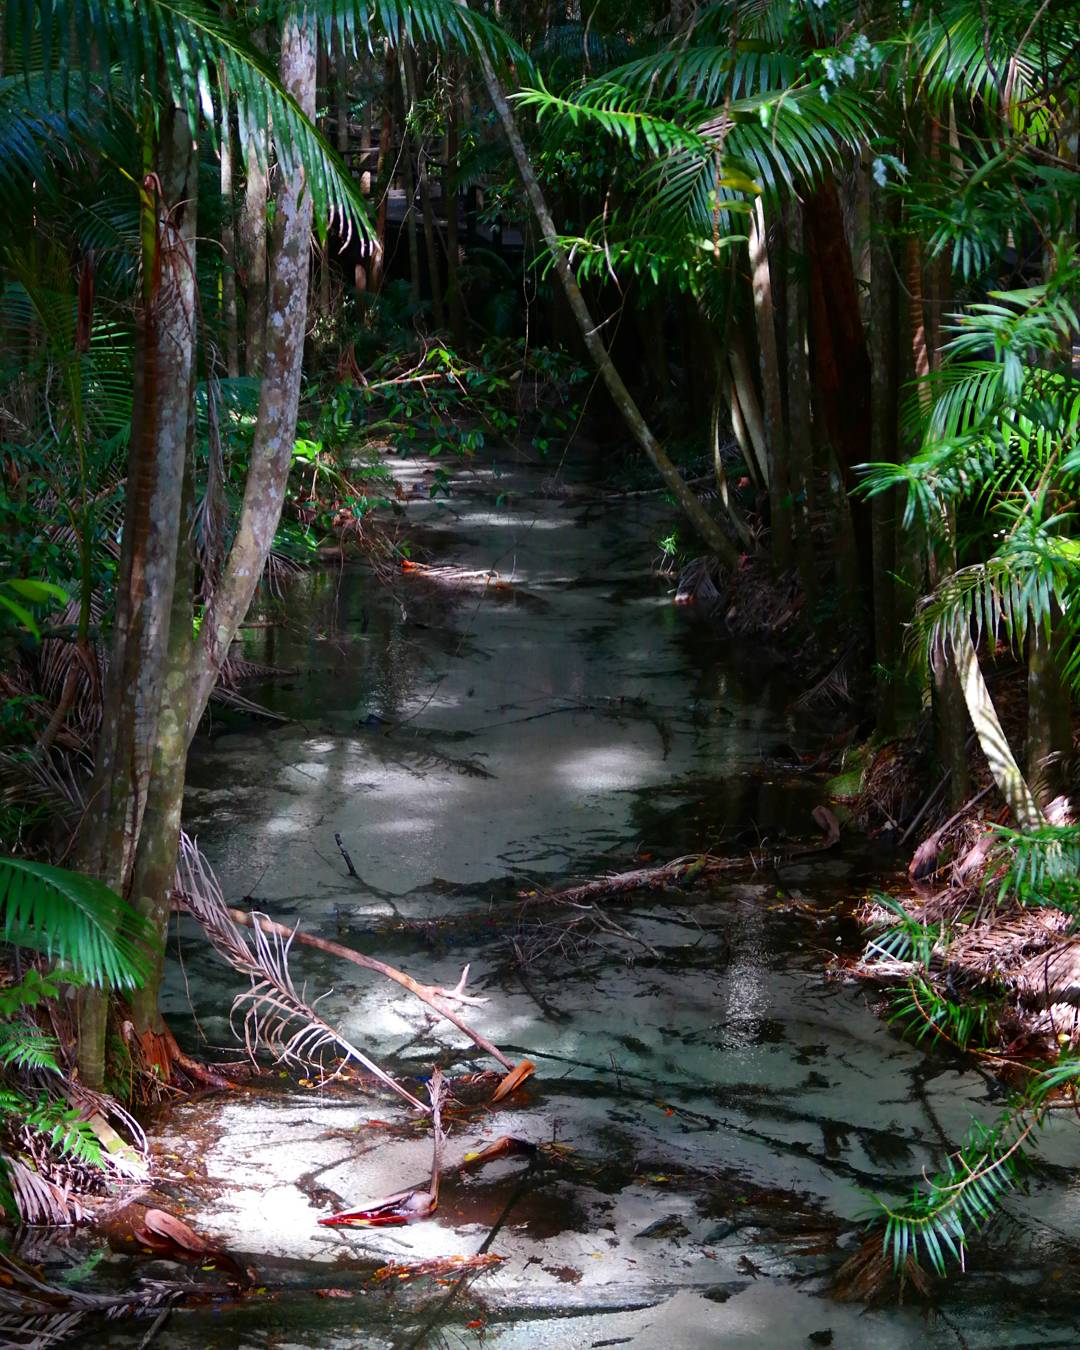 Walking through the rainforest on the island...full of clear creeks!